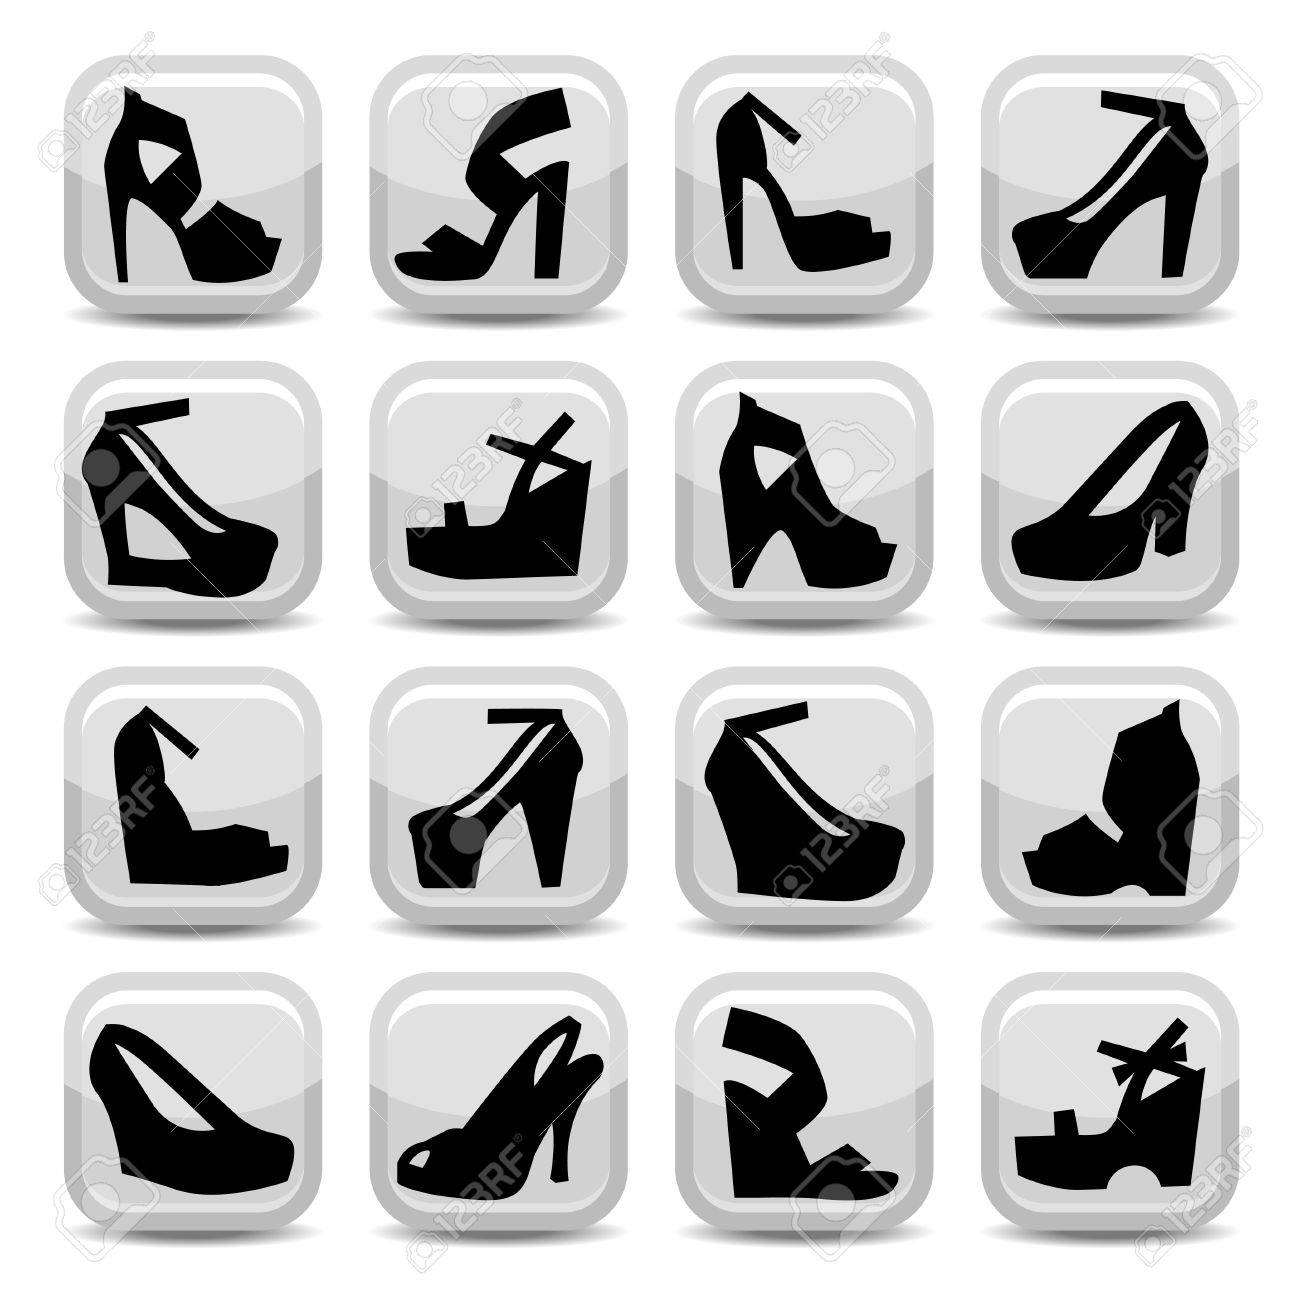 Elegant Fashion Shoes Icons Set Created For Mobile, Web And Applications. Stock Vector - 20953585